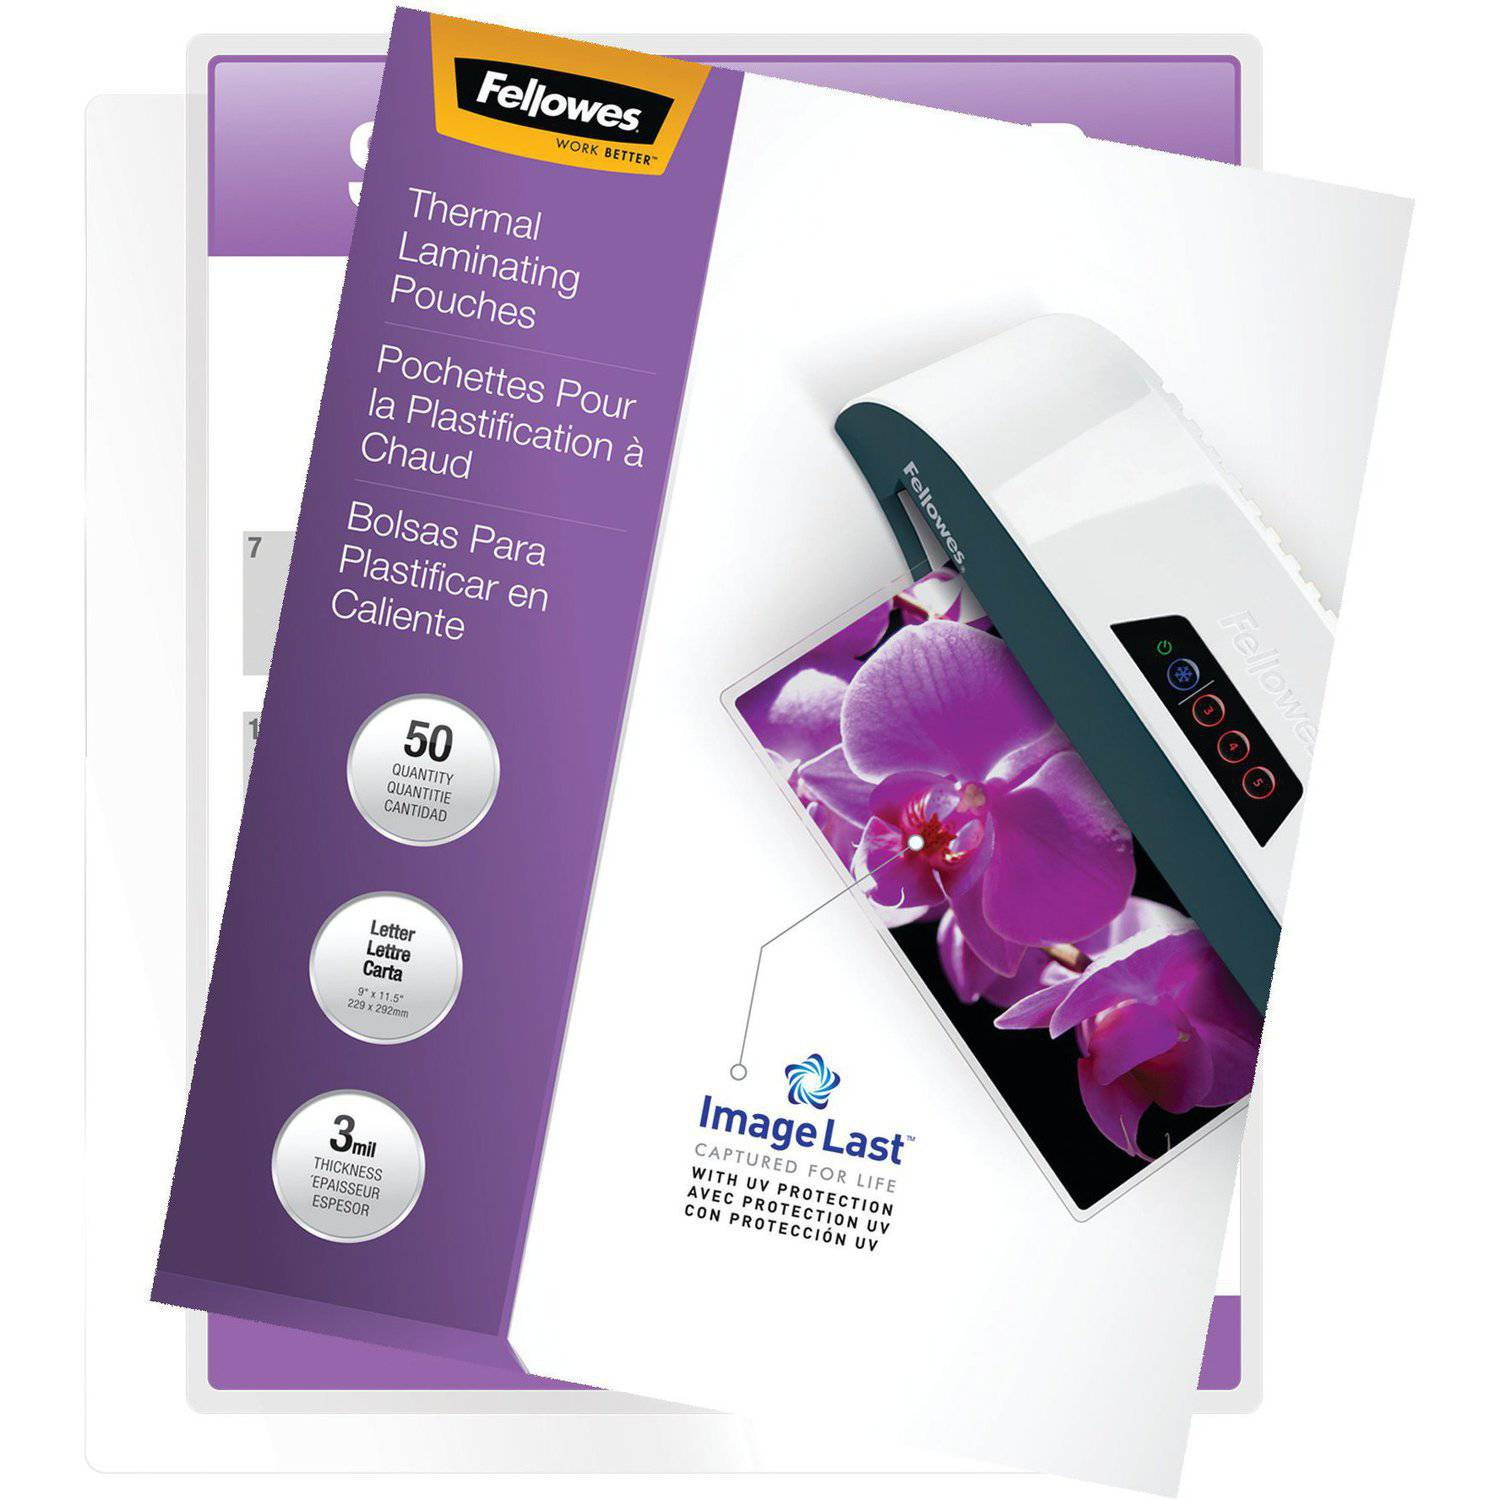 Fellowes Laminating Pouches - Letter, ImageLast, 3 mil, 50 pack